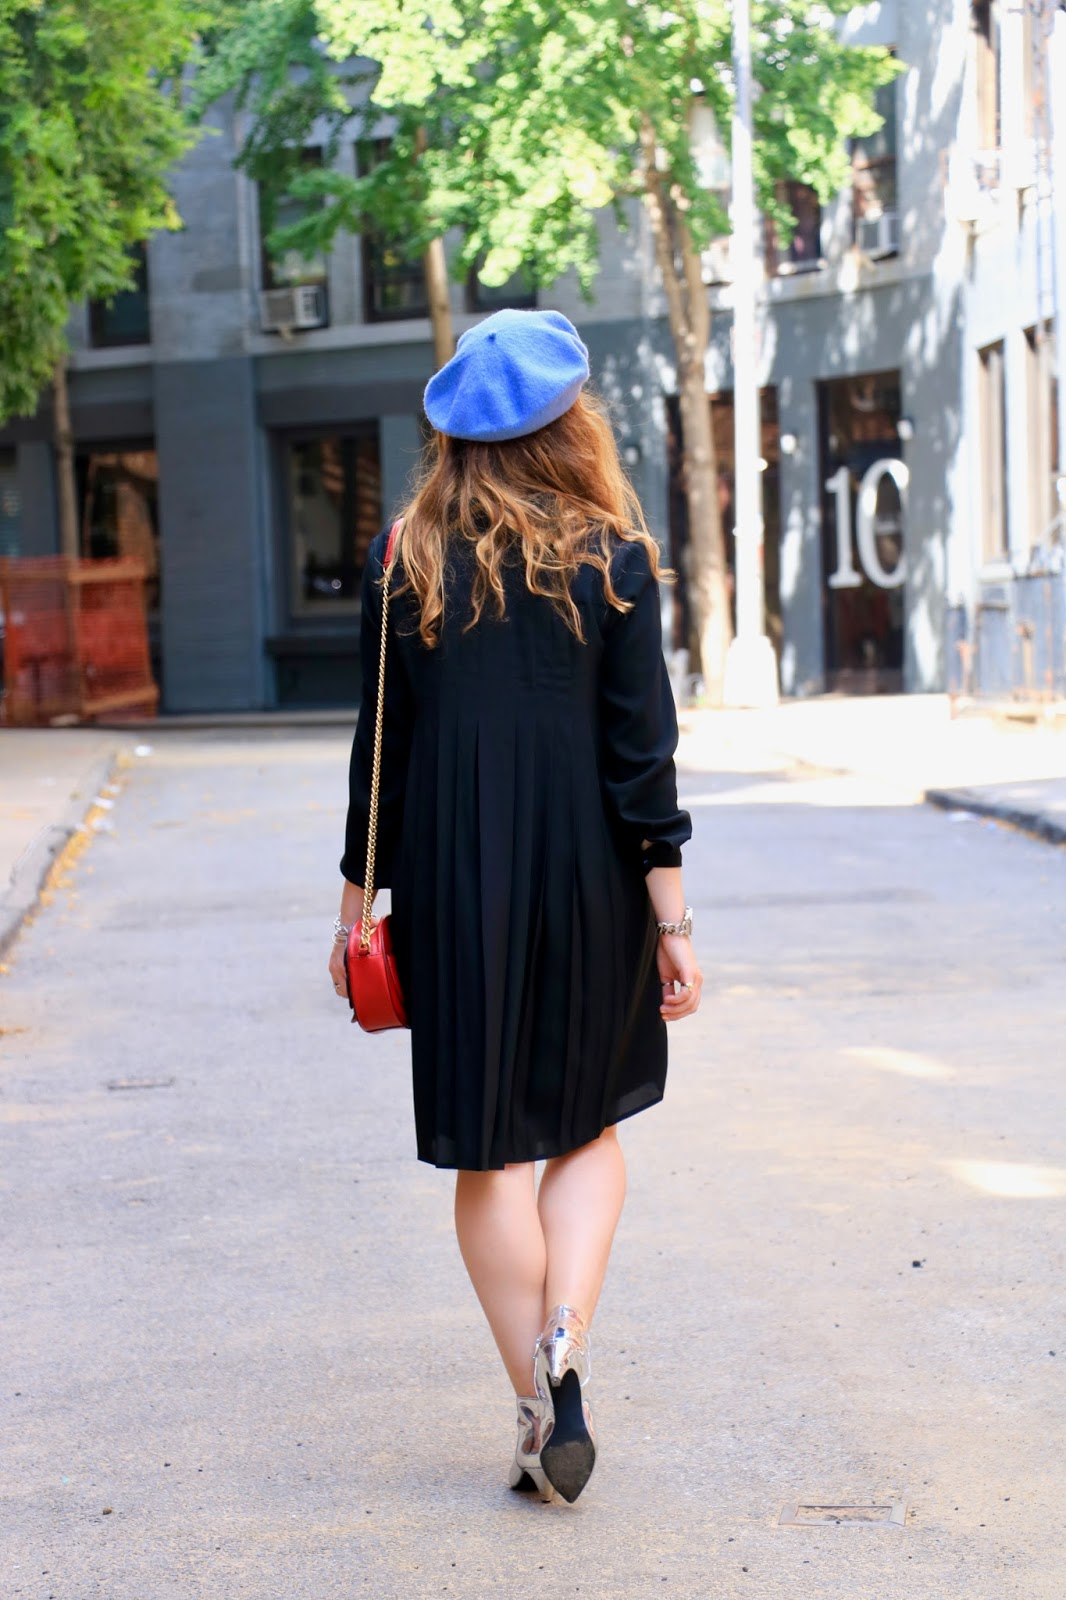 Fashion blogger Kathleen Harper showing off French street style the Paris way